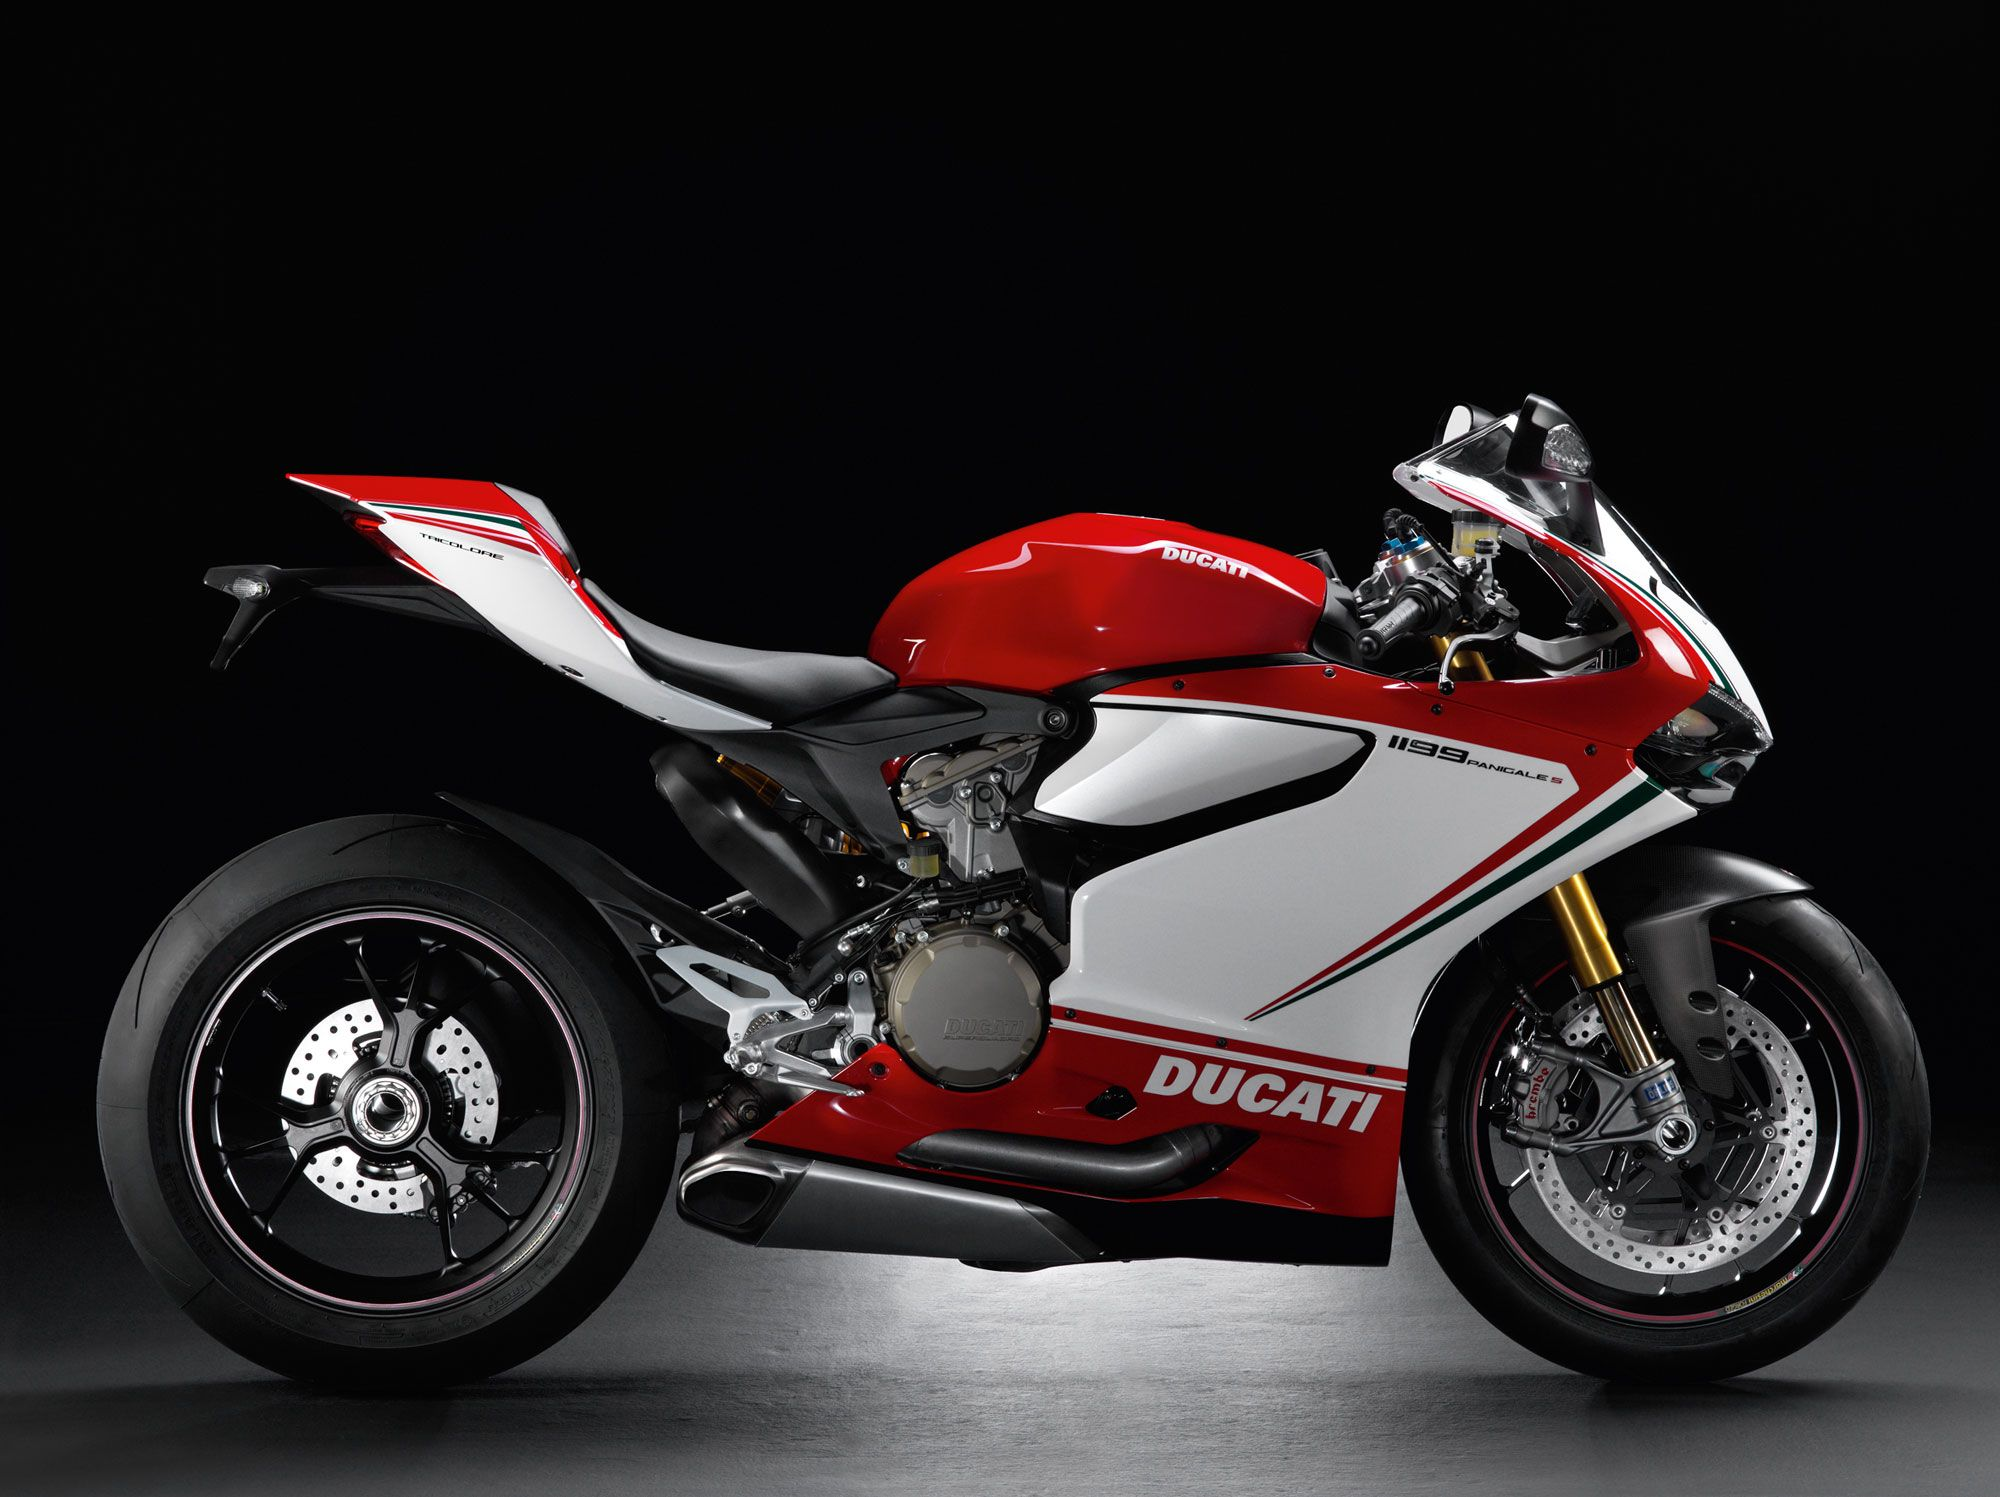 2013 Ducati Superbike 1199panigale S Tricolore Motorcycles